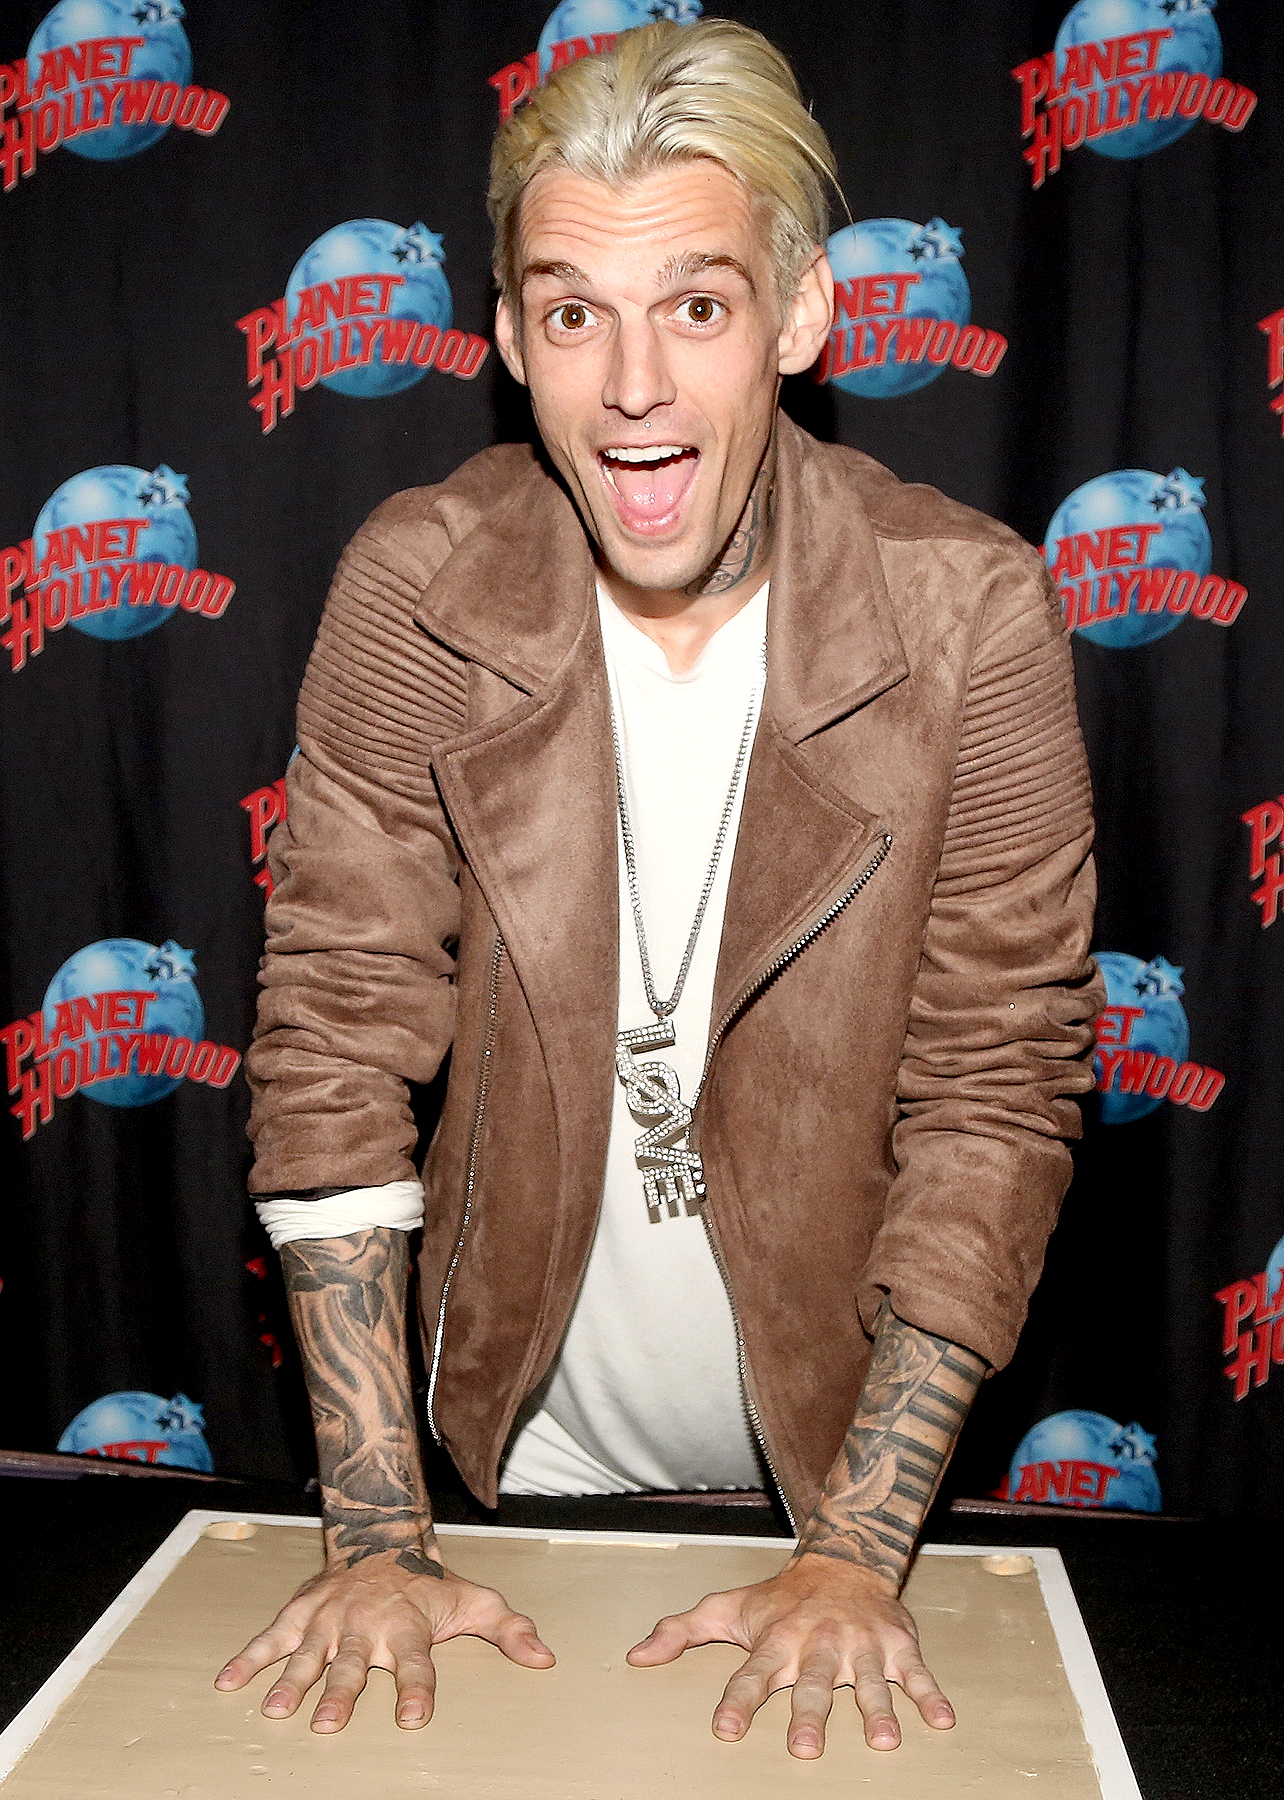 Aaron Carter poses during a handprint ceremony and meet & greet with fans as he visits Planet Hollywood Times Square on April 24, 2017 in New York City.